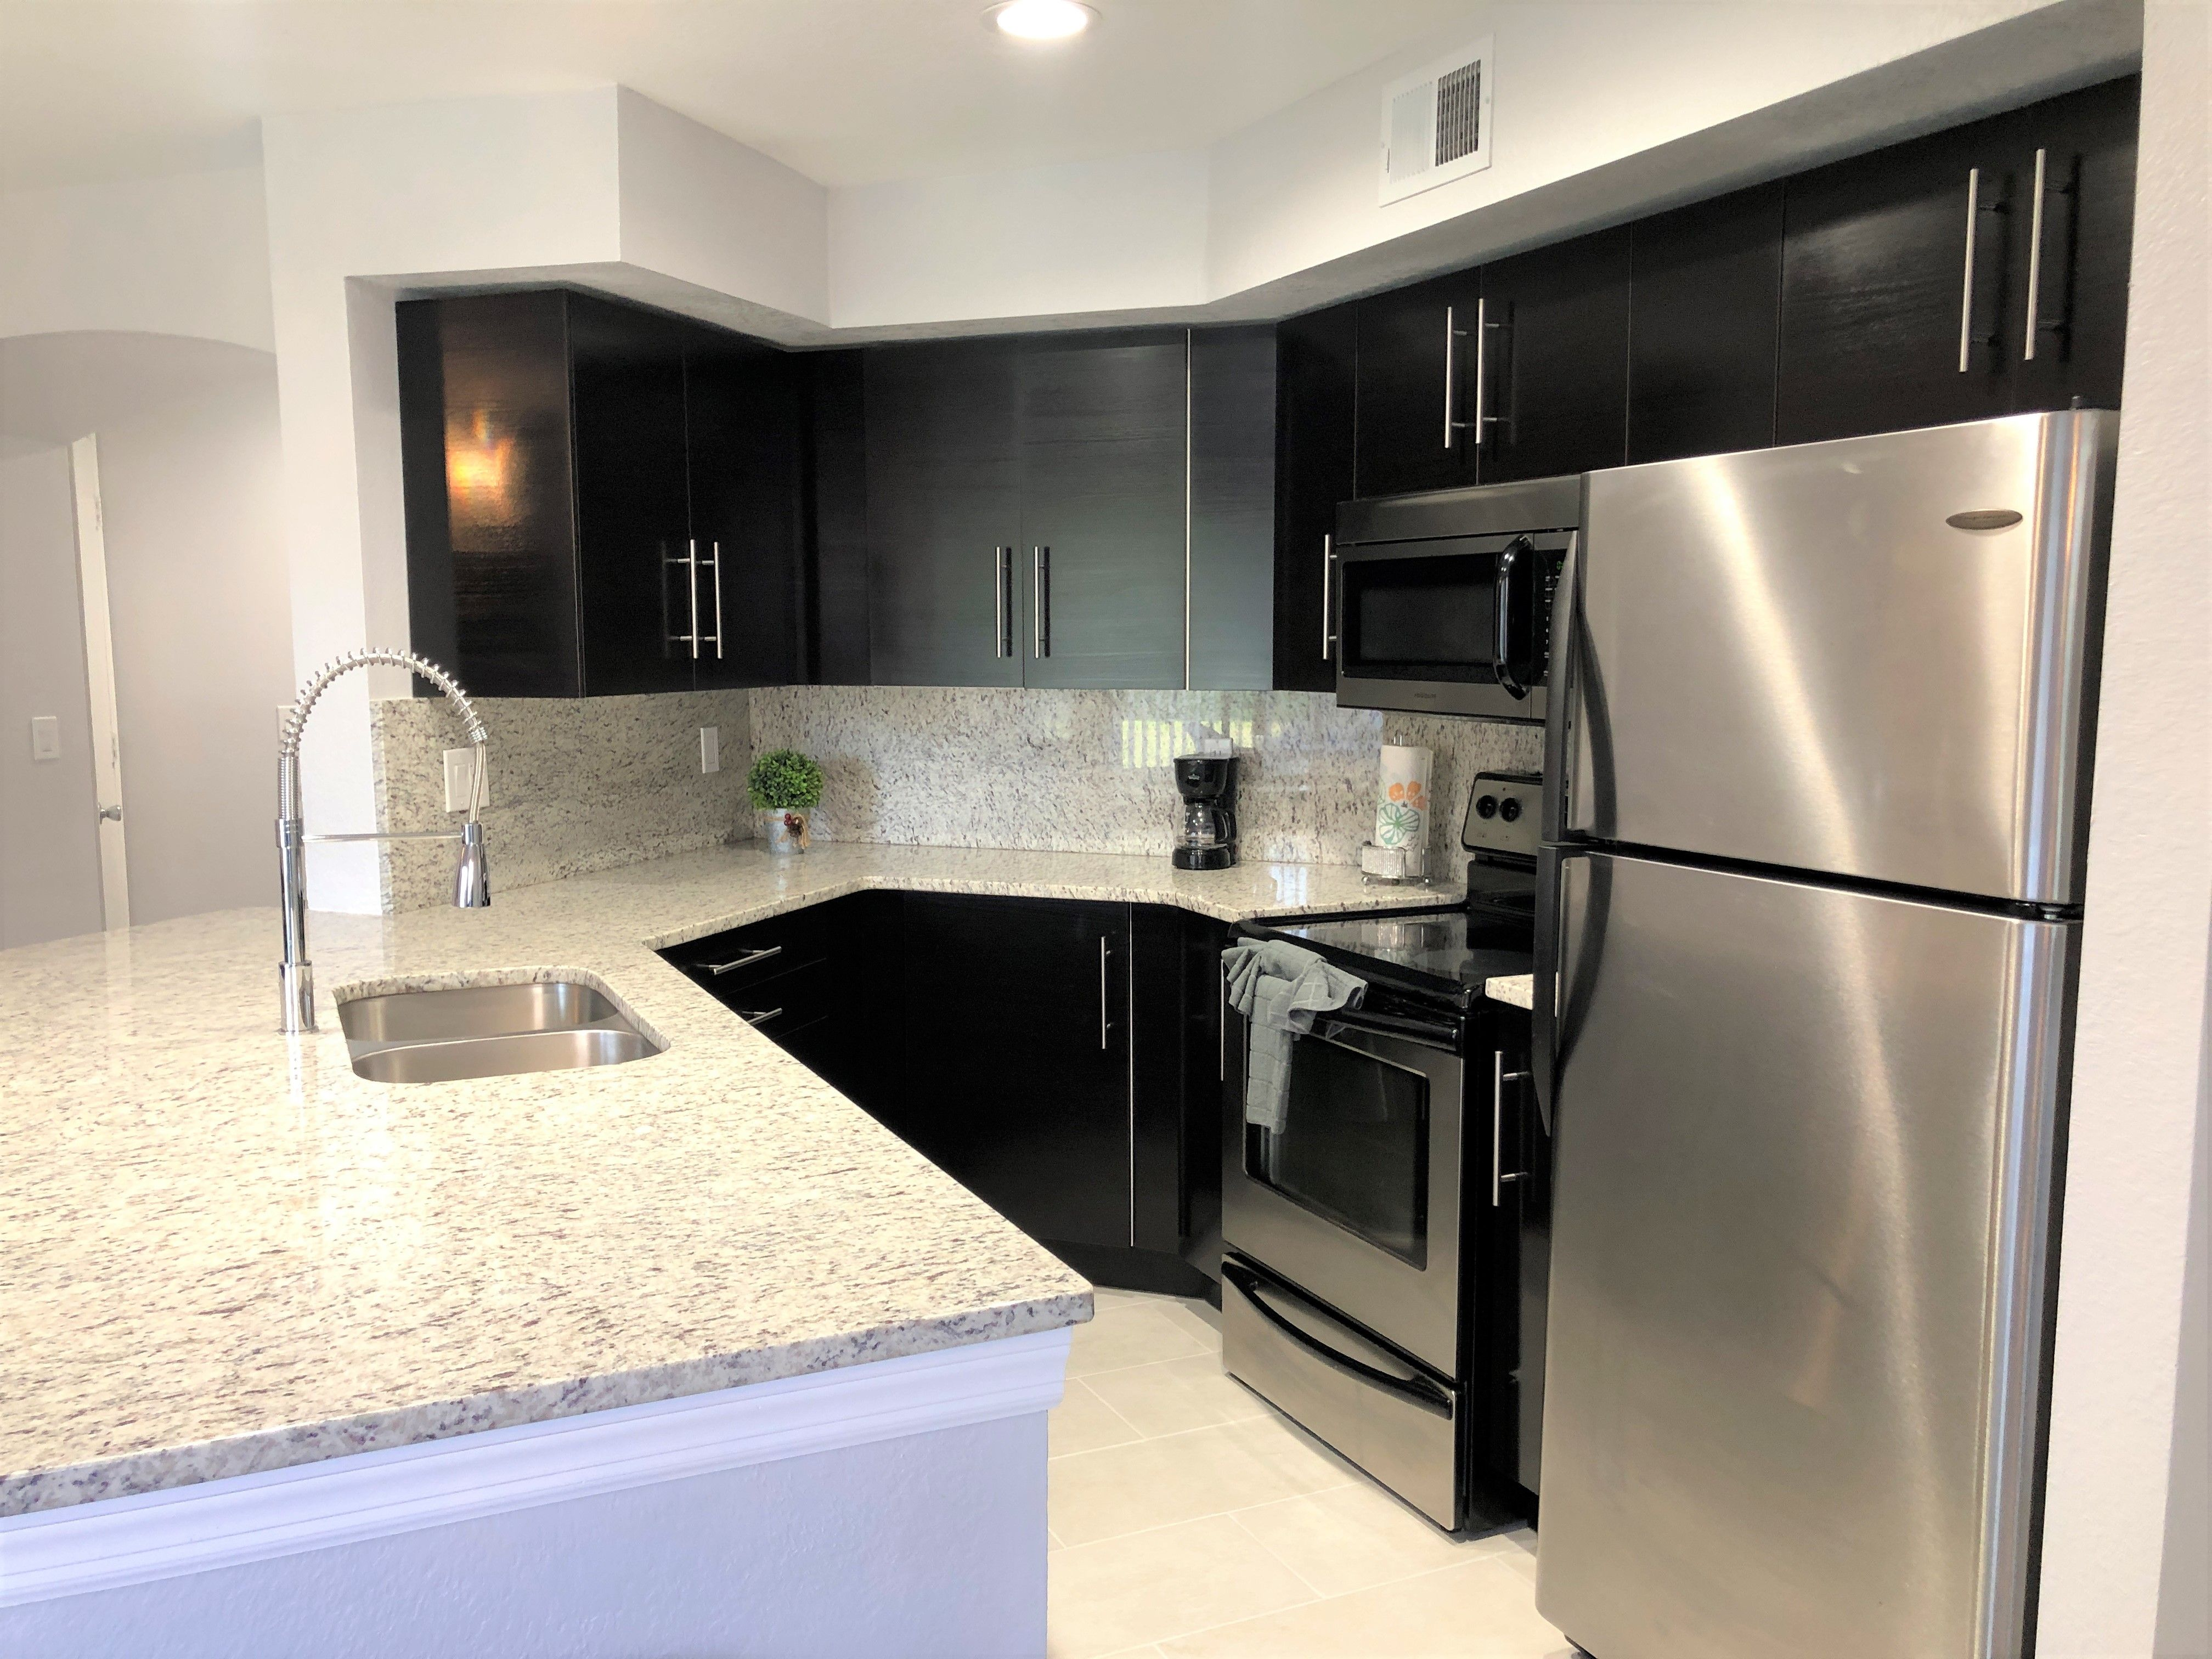 1 Bedroom Condo Located In Metrowest This Resort Like Community Includes A Gym Tennis Courts Pool San Luxury Kitchens Corporate Housing Furnished Apartment